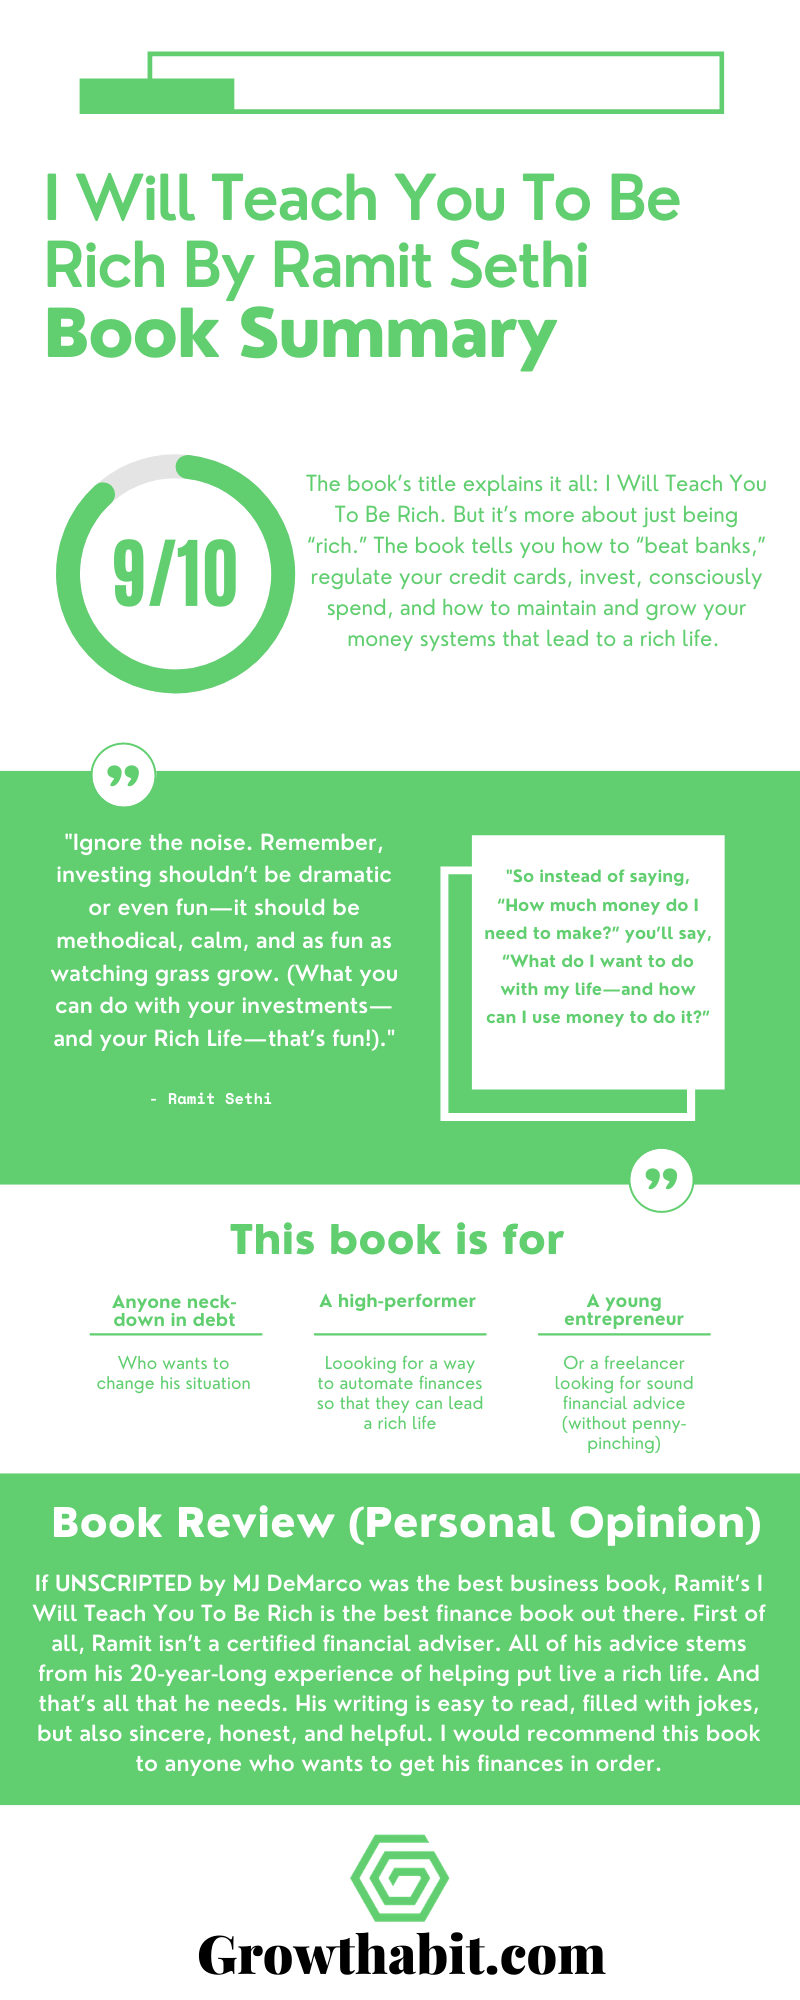 I Will Teach You To Be Rich by Ramit Sethi - Book Summary Infographic